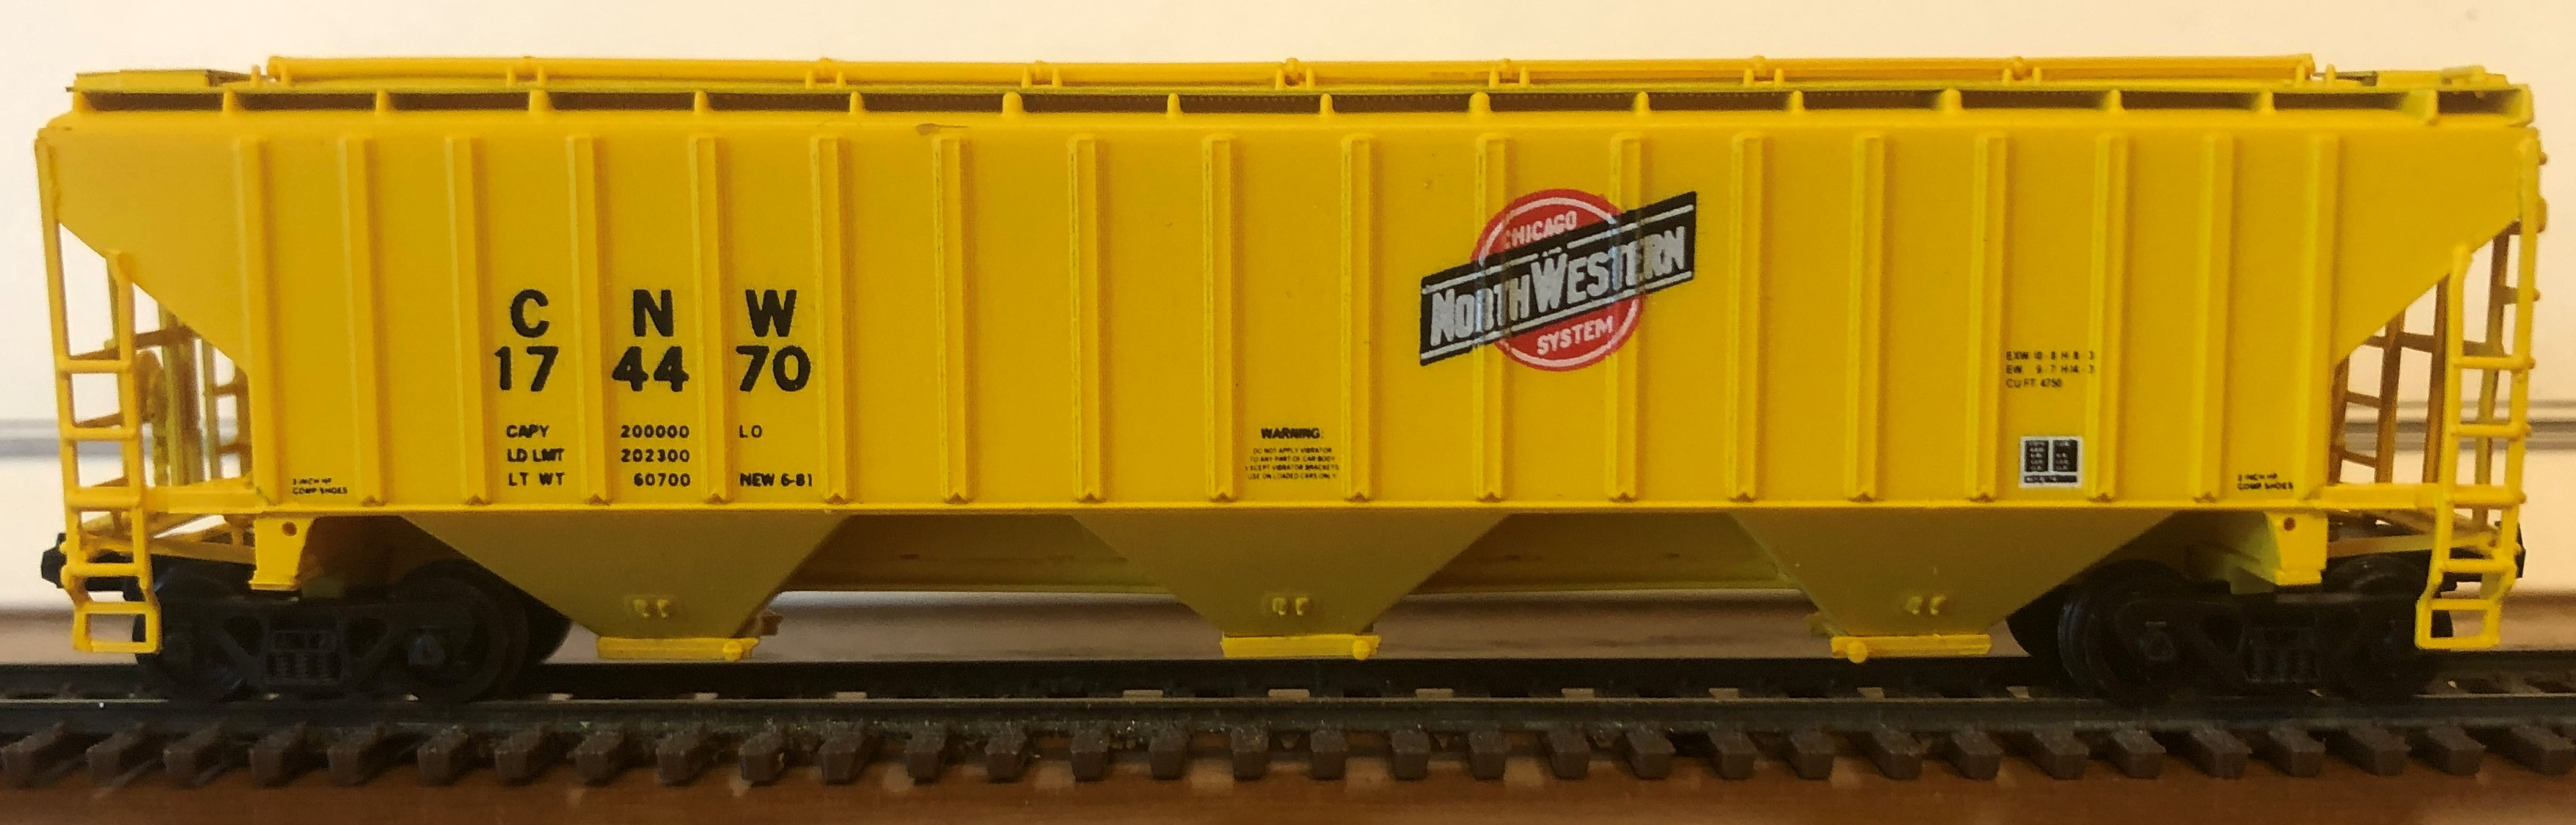 N Scale - Pacific Western Rail Systems - 1022F - Covered Hopper, 3-Bay, PS2-CD 4750 - Chicago & North Western - 174470